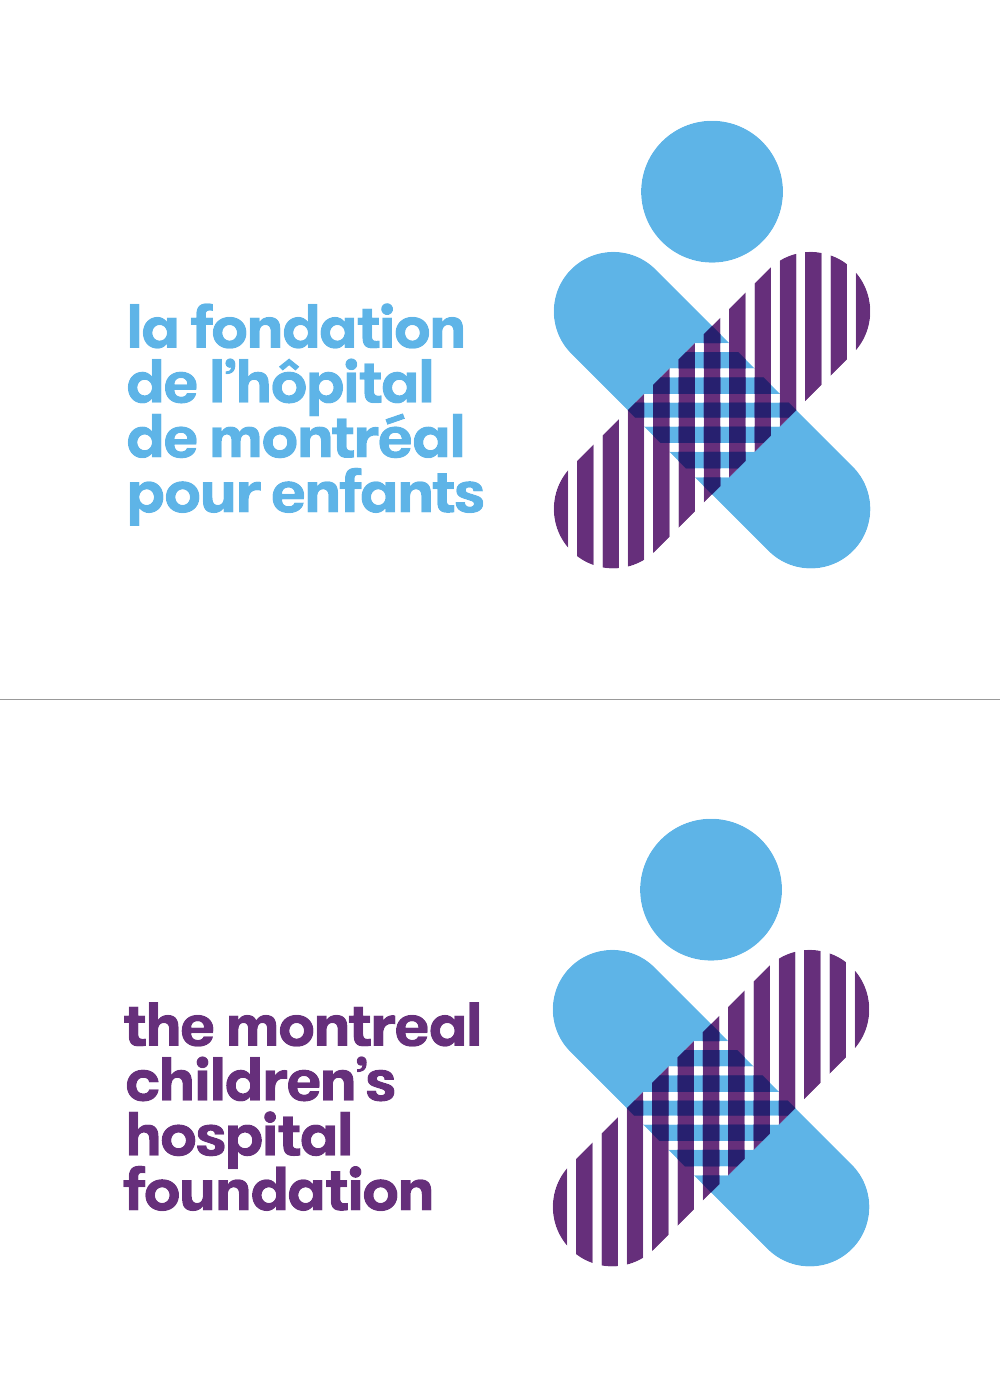 New Logo and Identity for Montreal Children's Hospital Foundation by Cossette